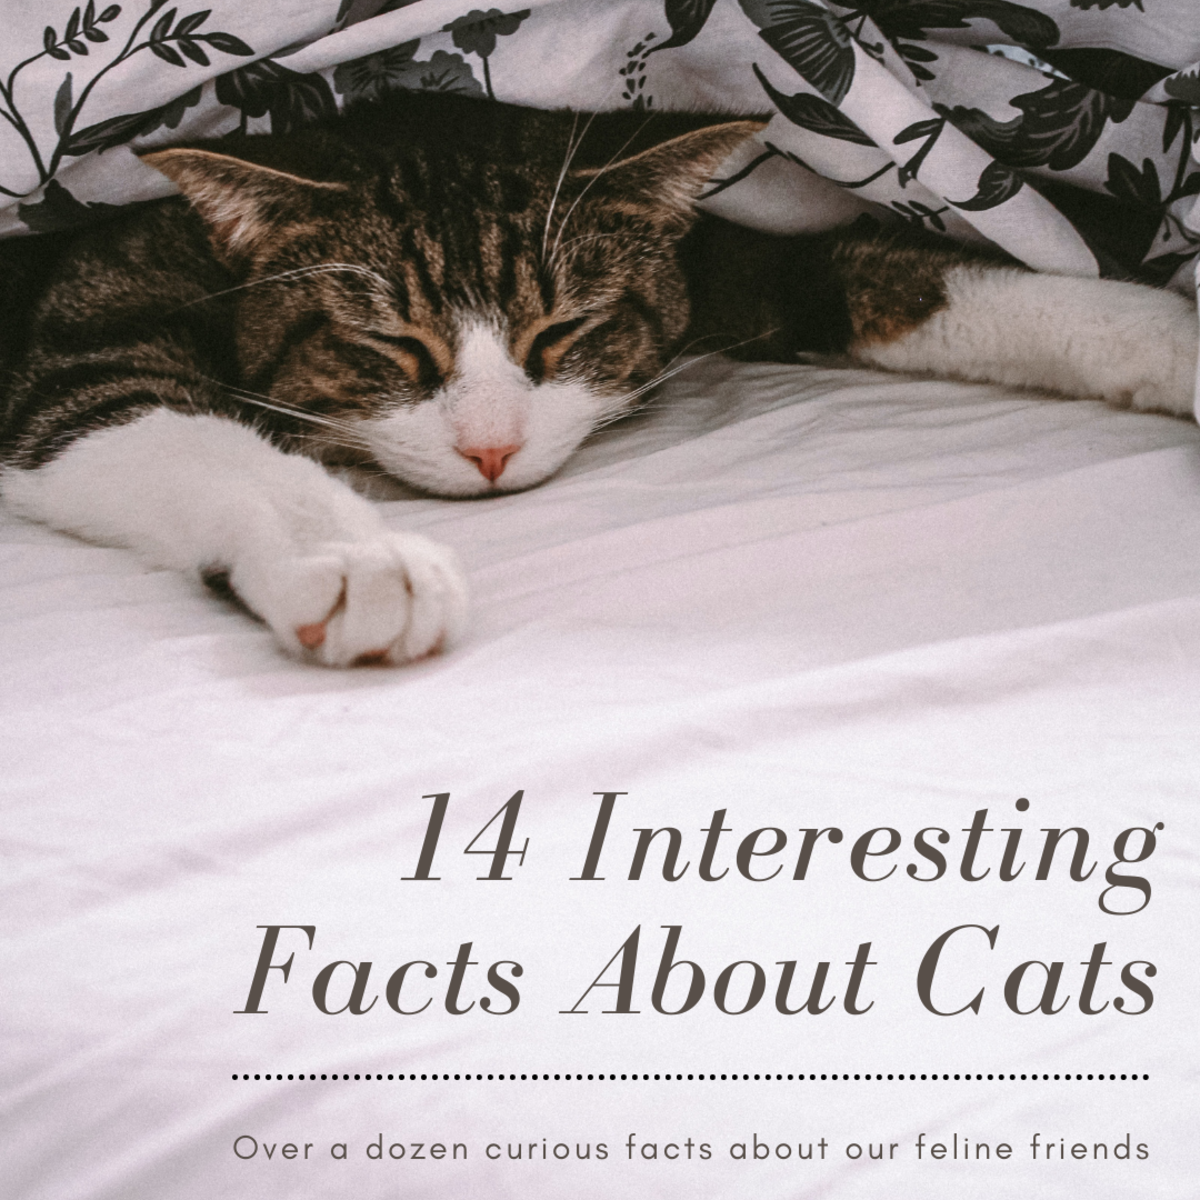 14 Cool and Interesting Facts About Cats That You May Not Know About